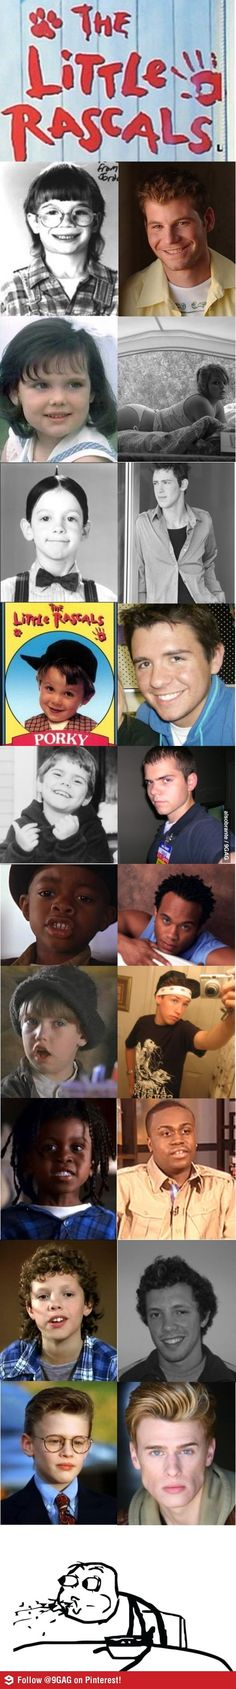 The Little Rascals (Then & Now) - how did Spanky end up working at Wal Mart?